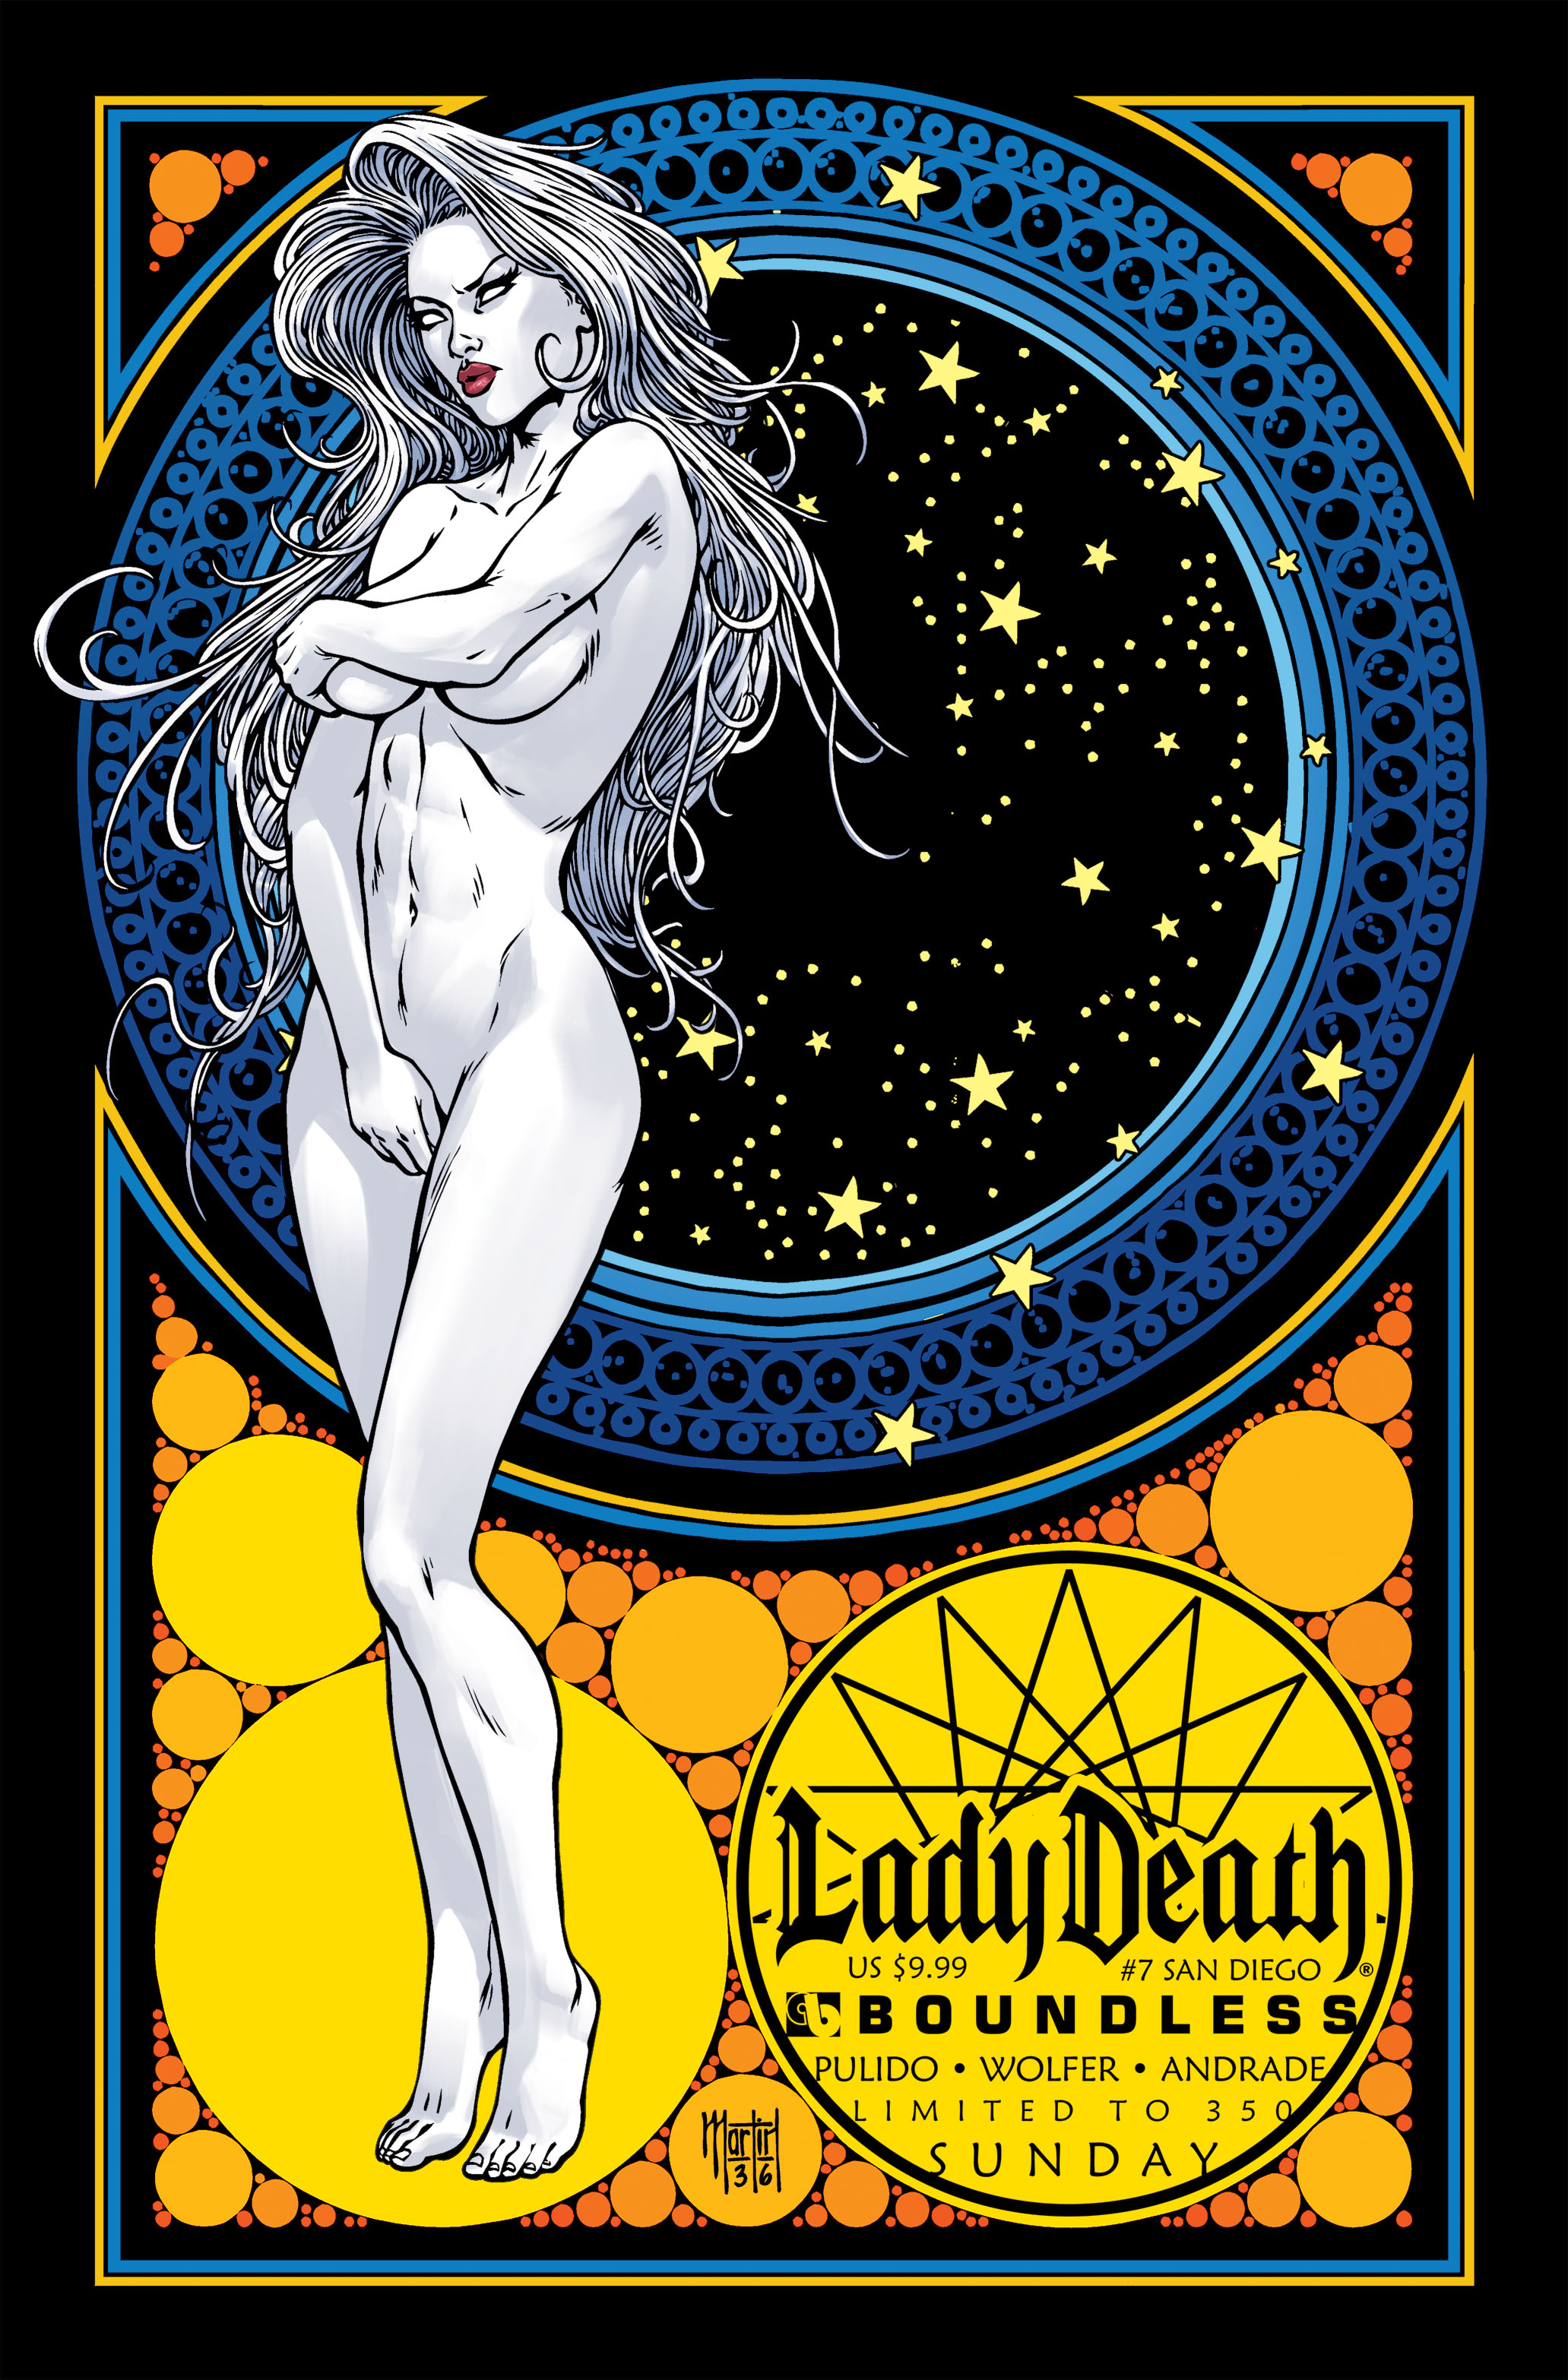 LADY DEATH (ONGOING) #7 SAN DIEGO SUN (MR)